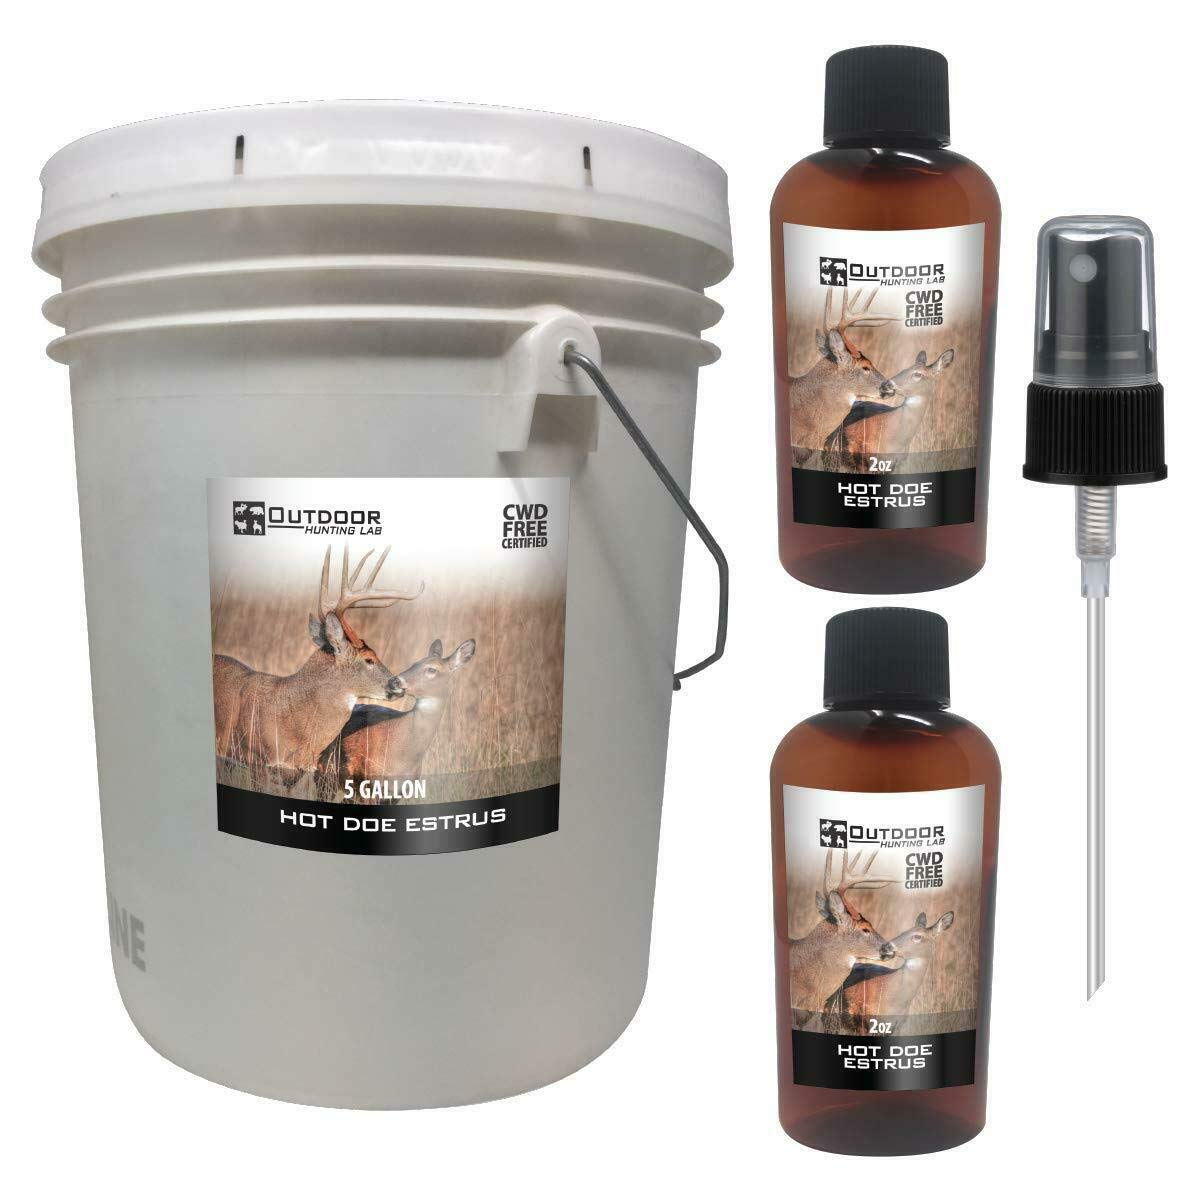 Outdoor Hunting Lab Hot Doe Estrus Buck Attractant Whitetail Lure Hunting Scent Natural Urine Deer Pee Heat (5 Gallon) by Outdoor Hunting Lab